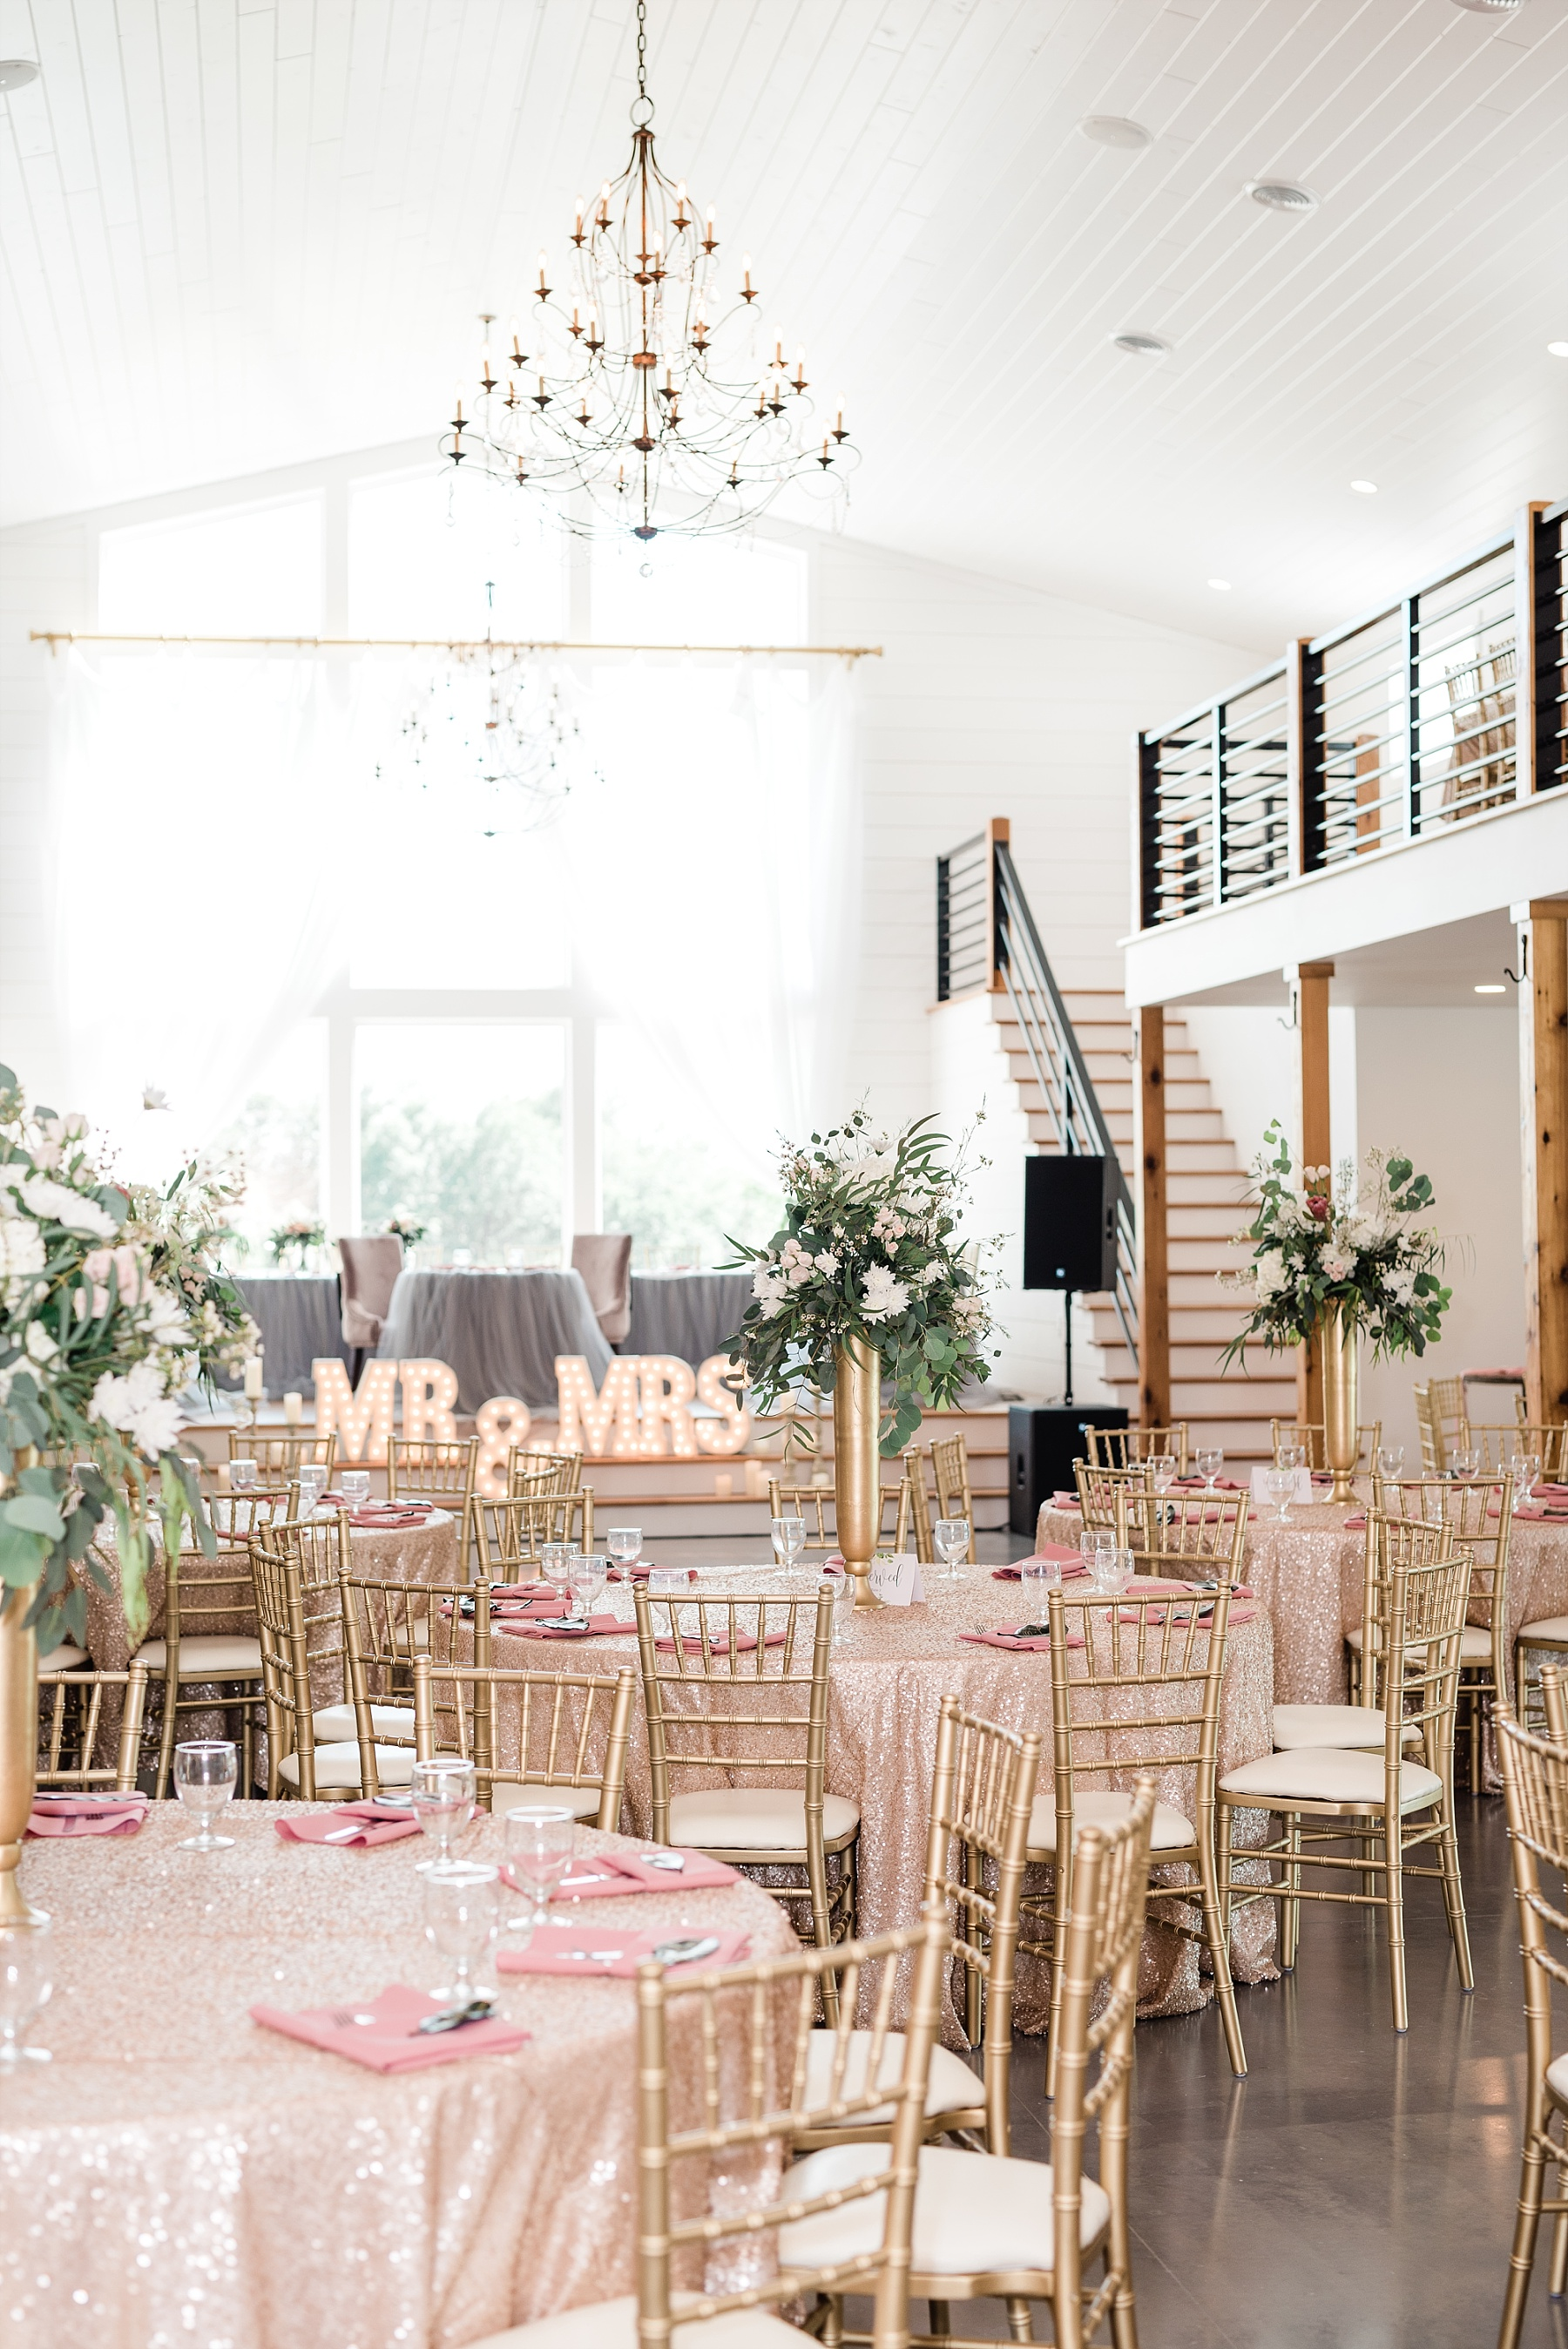 Stunning Heartfelt, Elegant, Fine Art, Chic, Outdoor Spring Wedding with Blush, Cream, Greenery, Rose Gold, and Sequins at Emerson Fields Venue by Kelsi Kliethermes Photography_0034.jpg